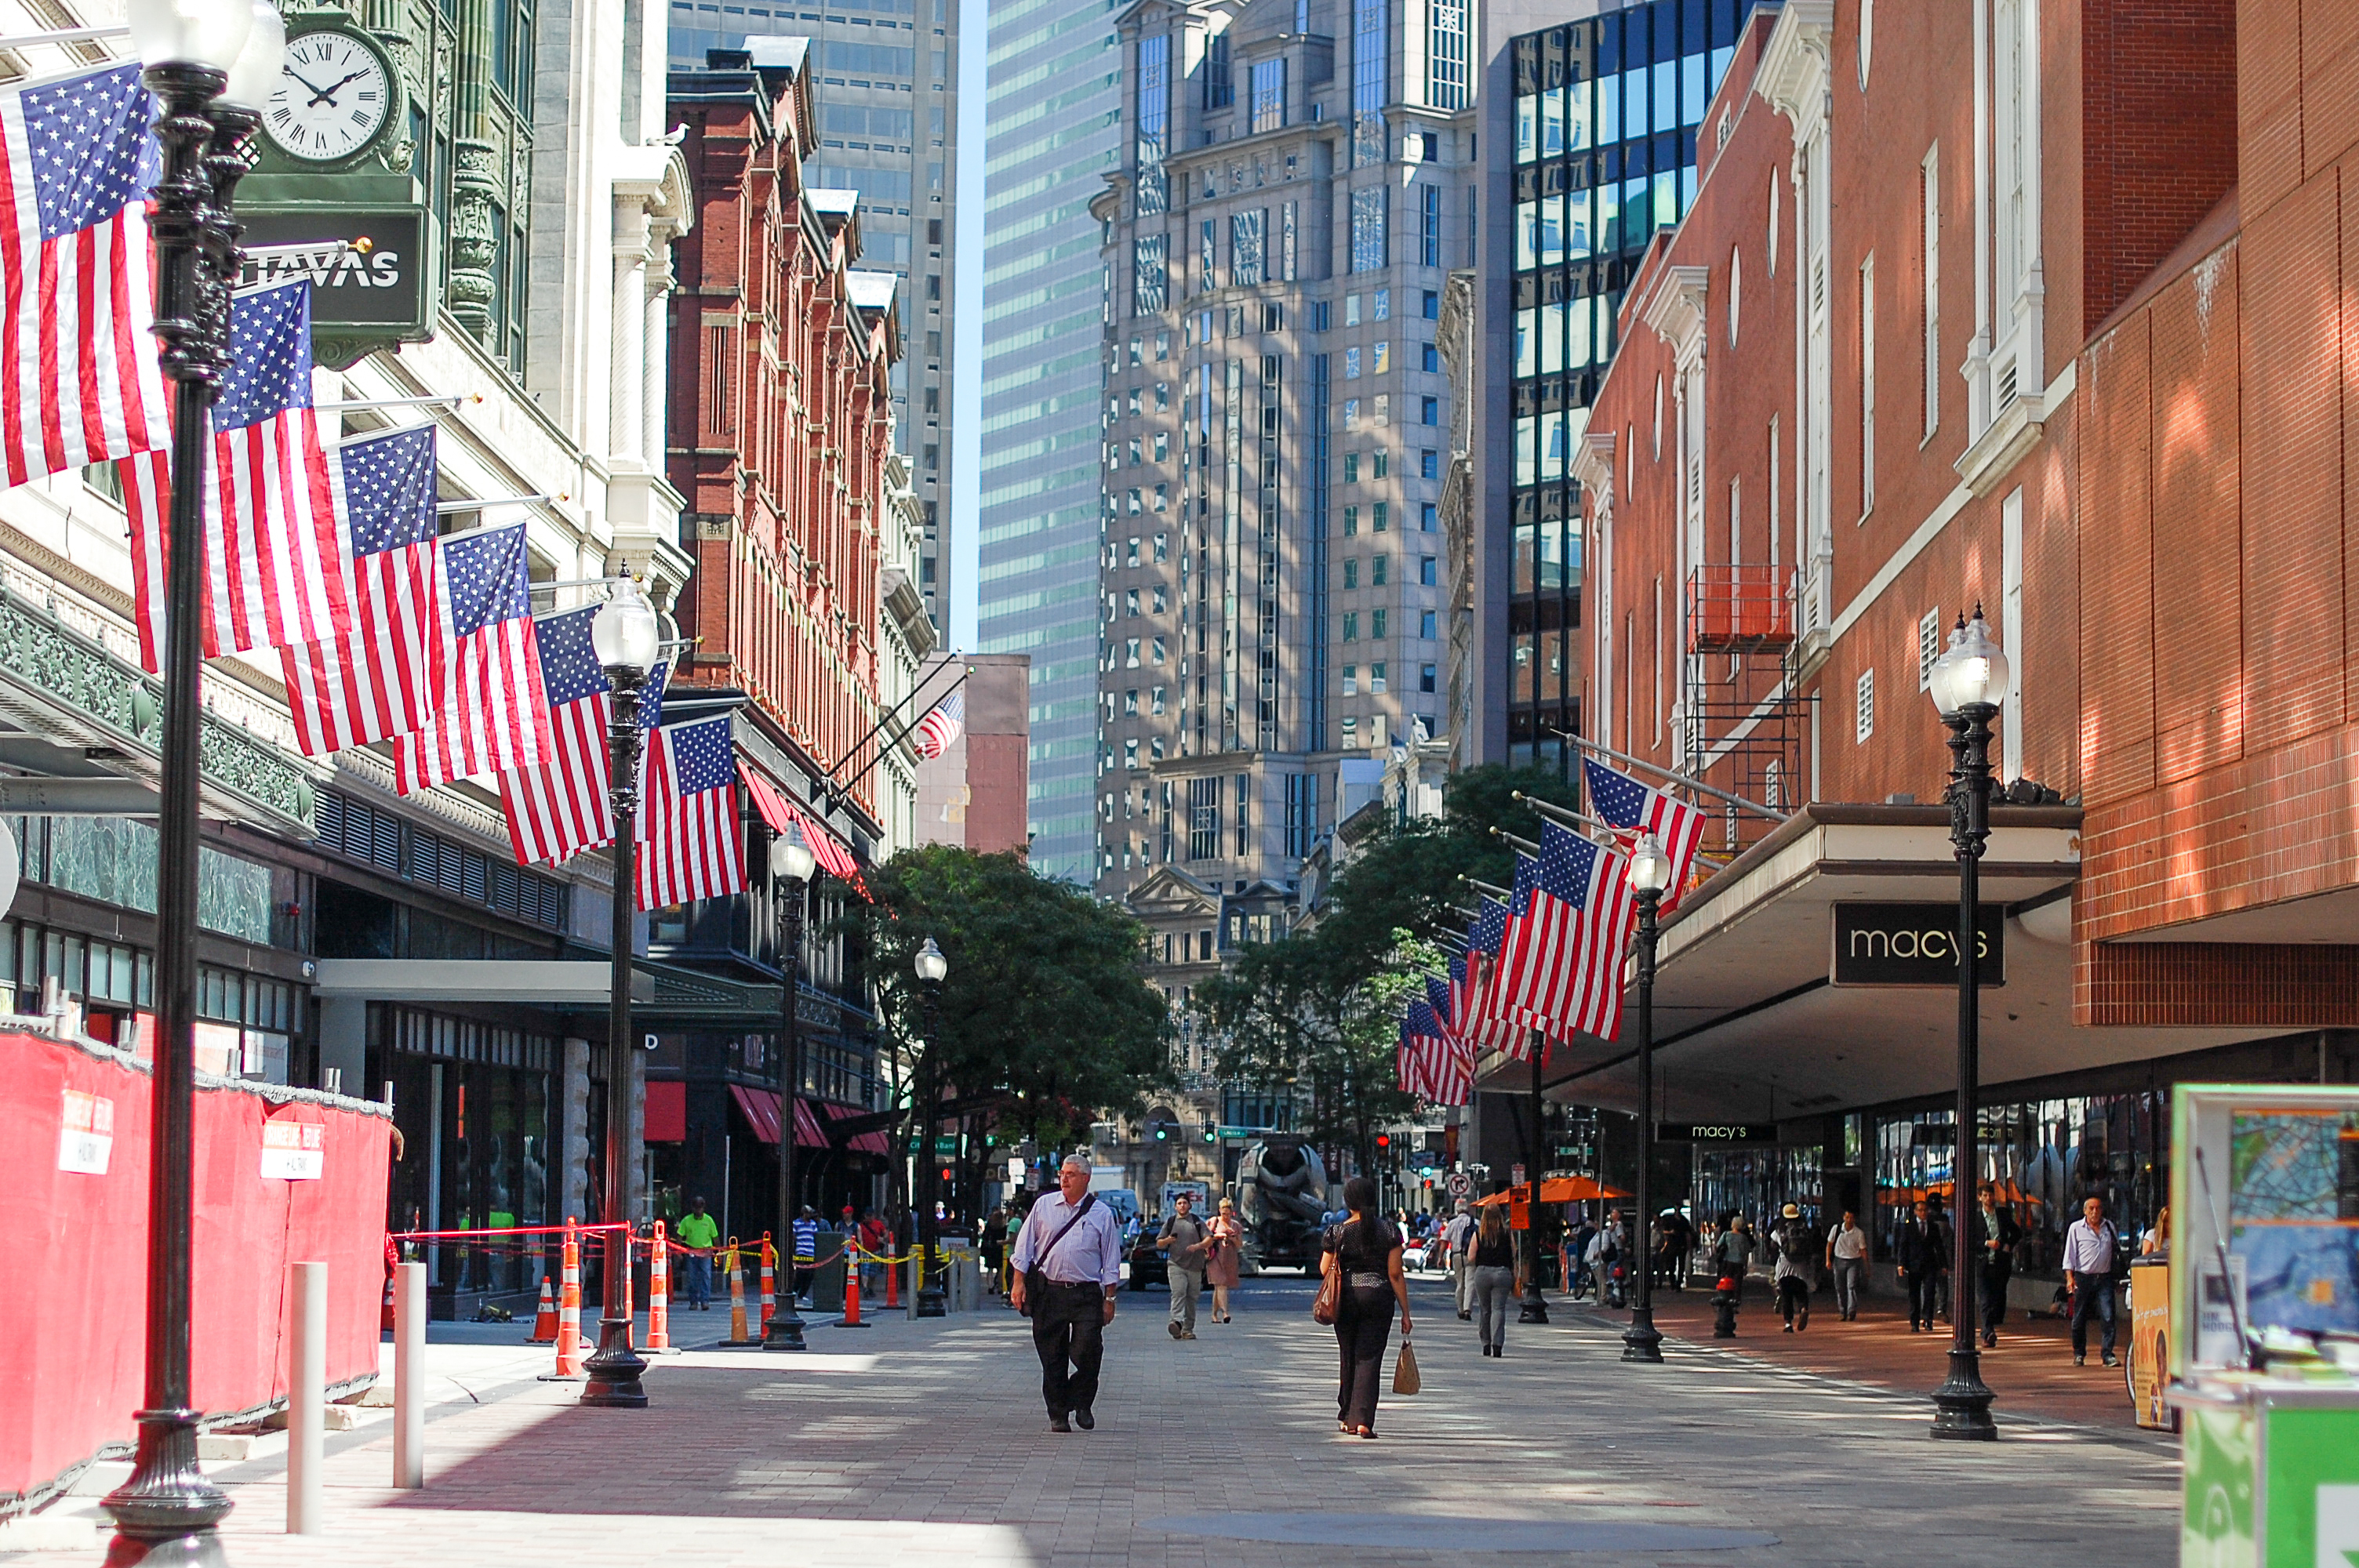 Reviews on Downtown Crossing Restaurants in Boston, MA - Yvonne's, The Merchant, Jm Curley, Silvertone, Spyce, Bostonia Public House, Taste Wine Bar & Cafe, Boston Chops Downtown, Grass Roots Cafe, Marliave, Legal Crossing, whomeverf.cf wine bar,.